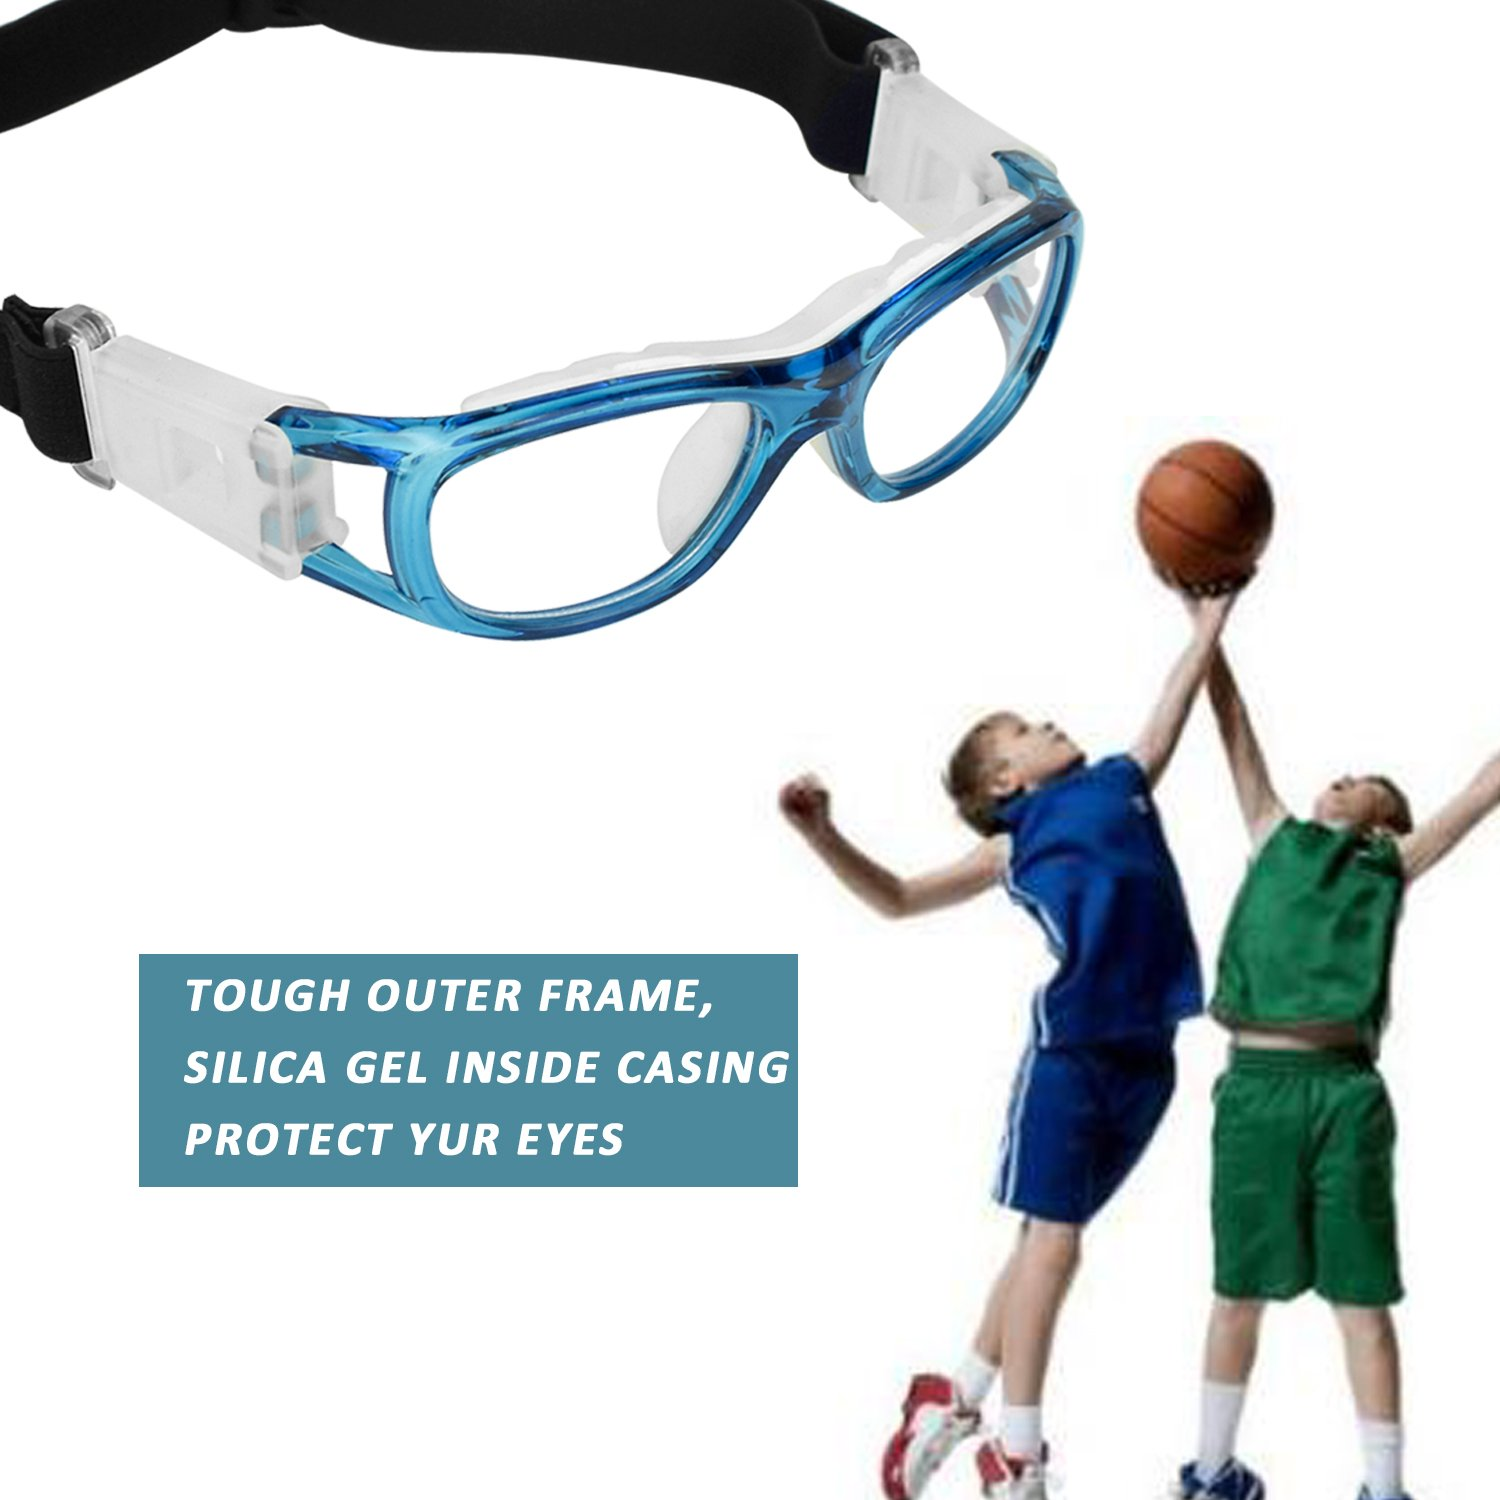 ae65f0fa5e2 Elemart (TM ) Unisex Kids Sport Glasses Anti-fog Protective Safety Goggles